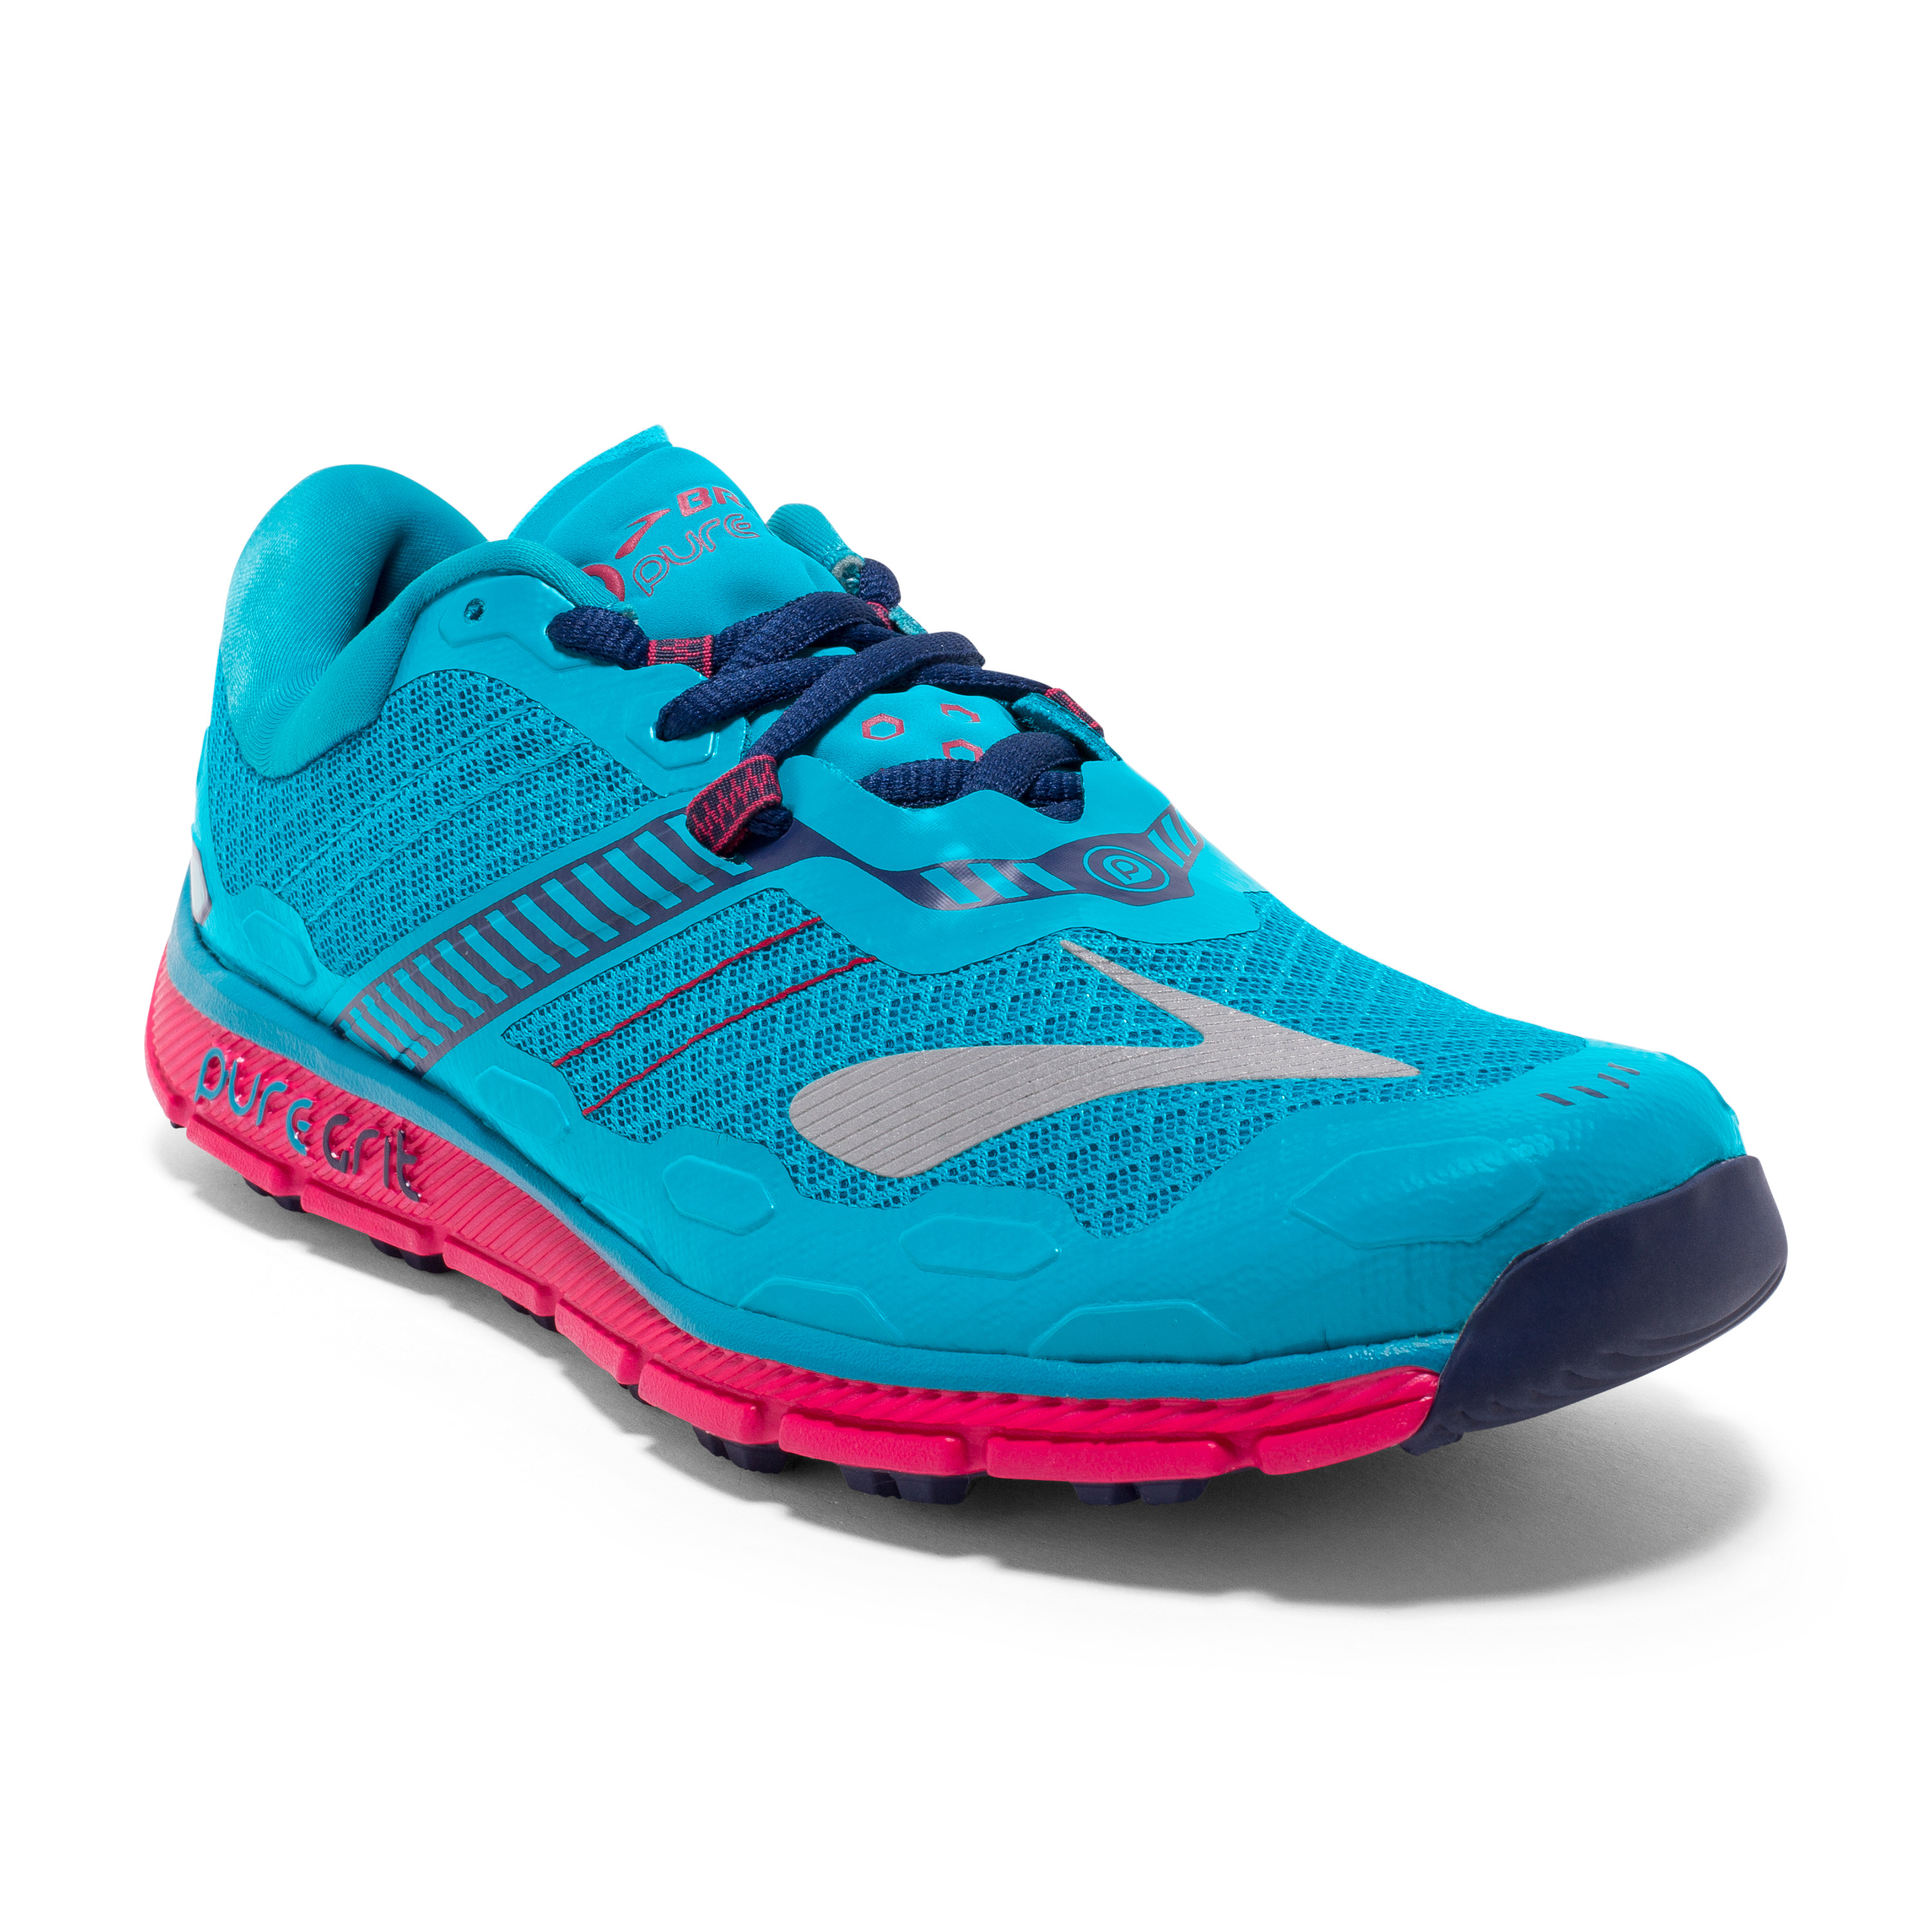 74cee6ad4476a Brooks PureGrit 5 Womens Running Shoes - Alton Sports